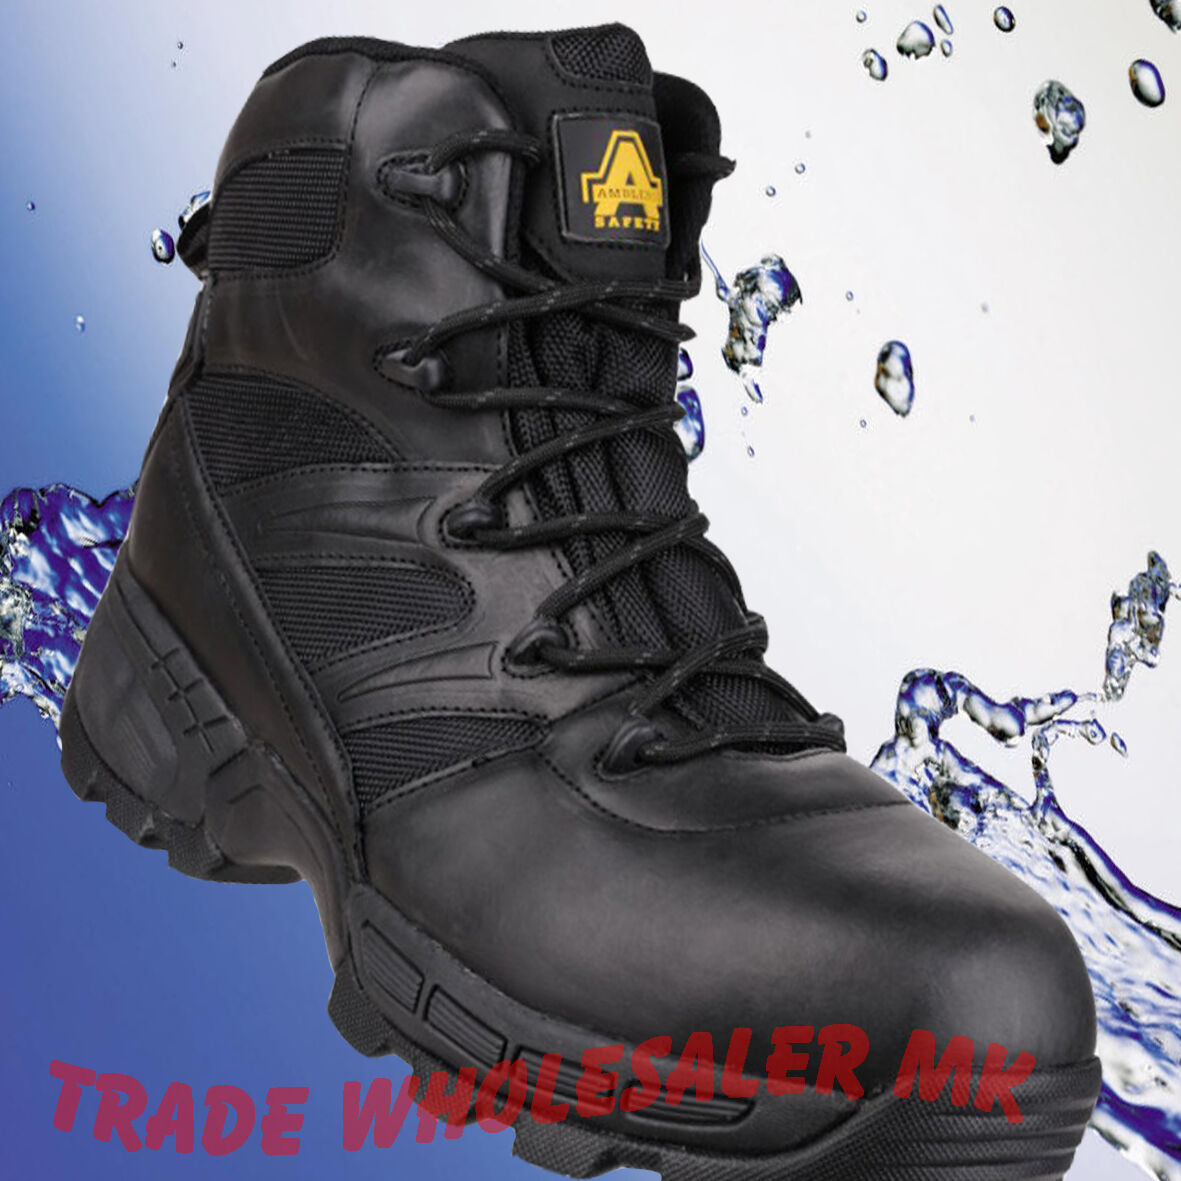 WATERPROOF SAFETY BOOTS PIRANHA WORK BOOTS SAFETY TOE CAP FS410